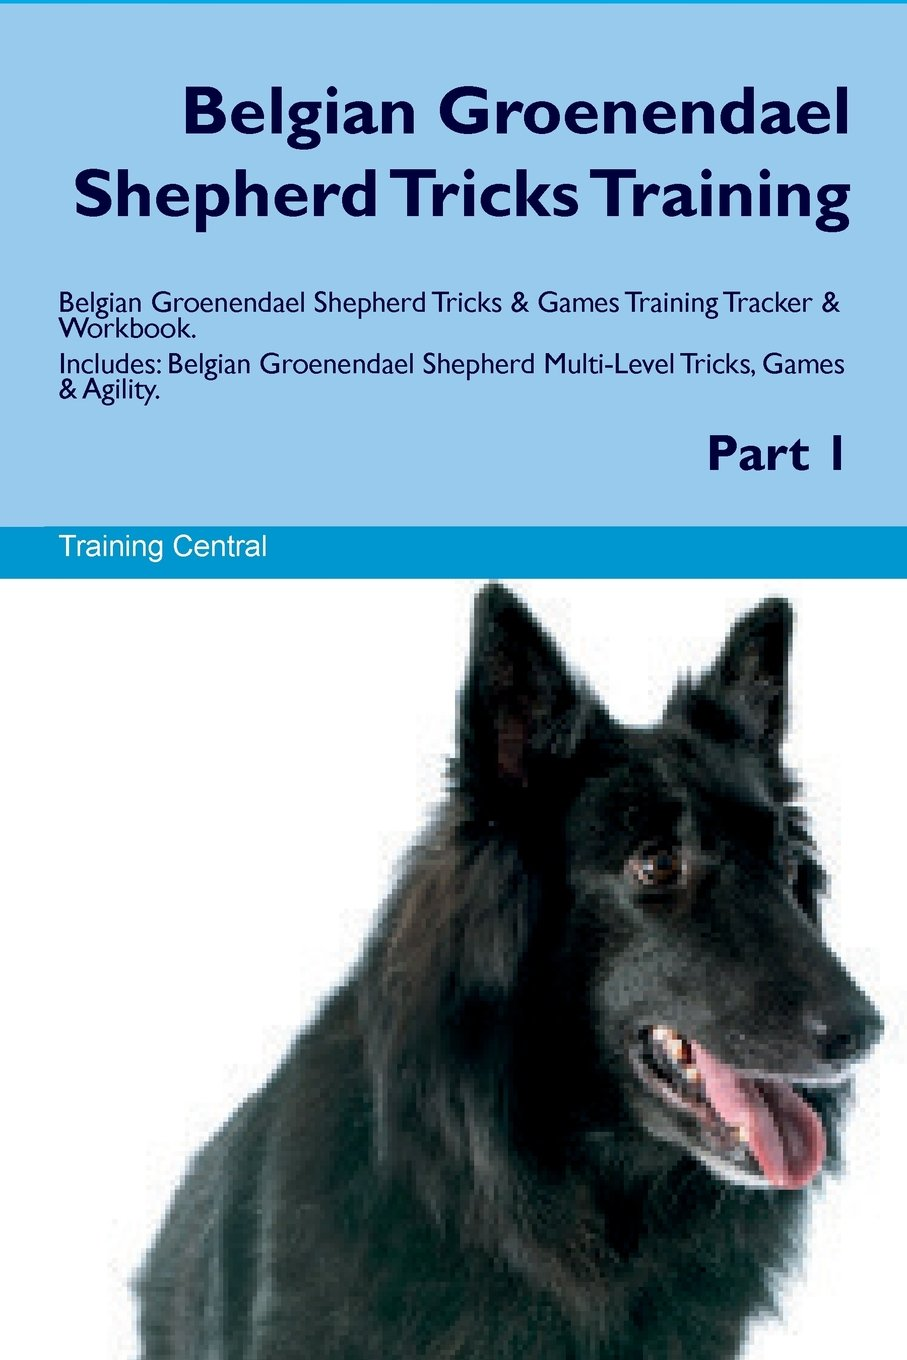 Belgian Groenendael Shepherd Tricks Training Belgian Groenendael Shepherd Tricks & Games Training Tracker & Workbook. Includes: Belgian Groenendael Shepherd Multi-Level Tricks, Games & Agility. Part 1